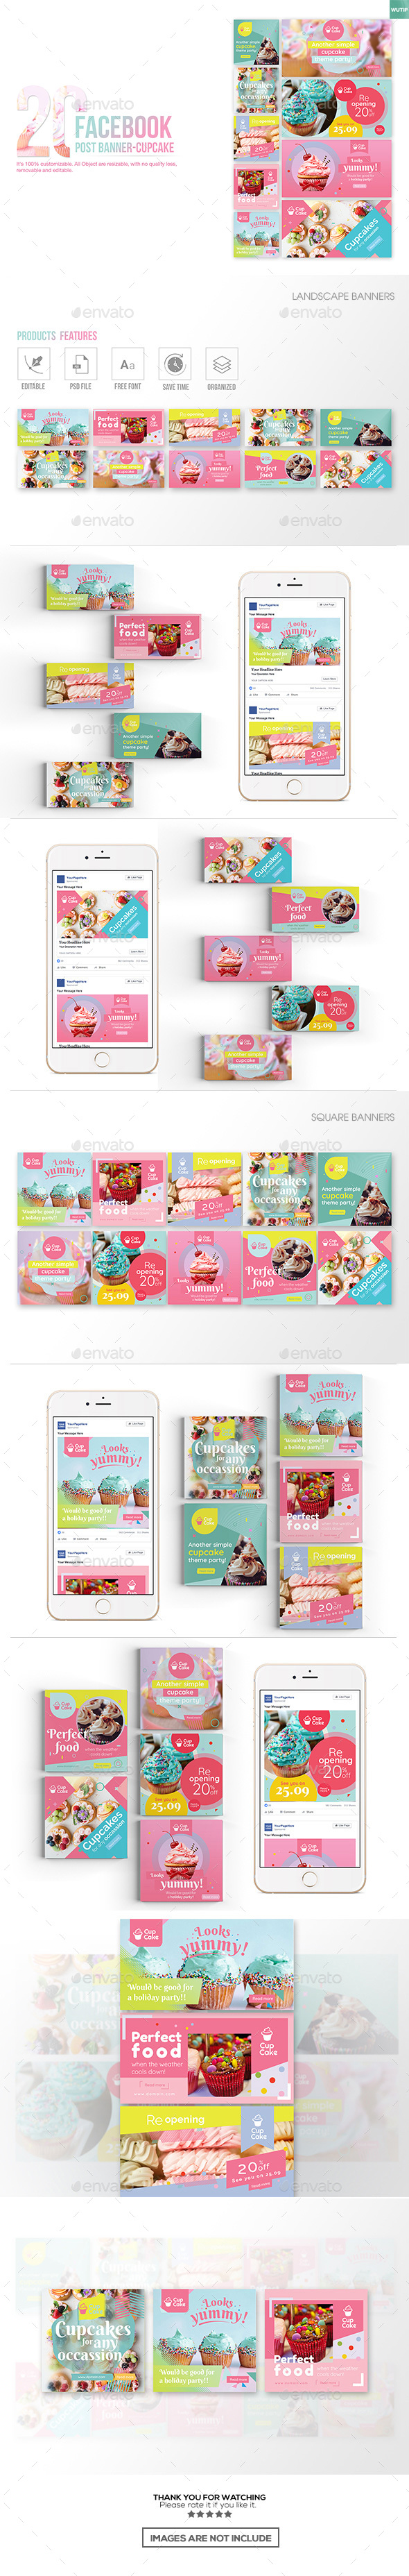 20 Facebook Post Banner - Cupcake - Miscellaneous Social Media